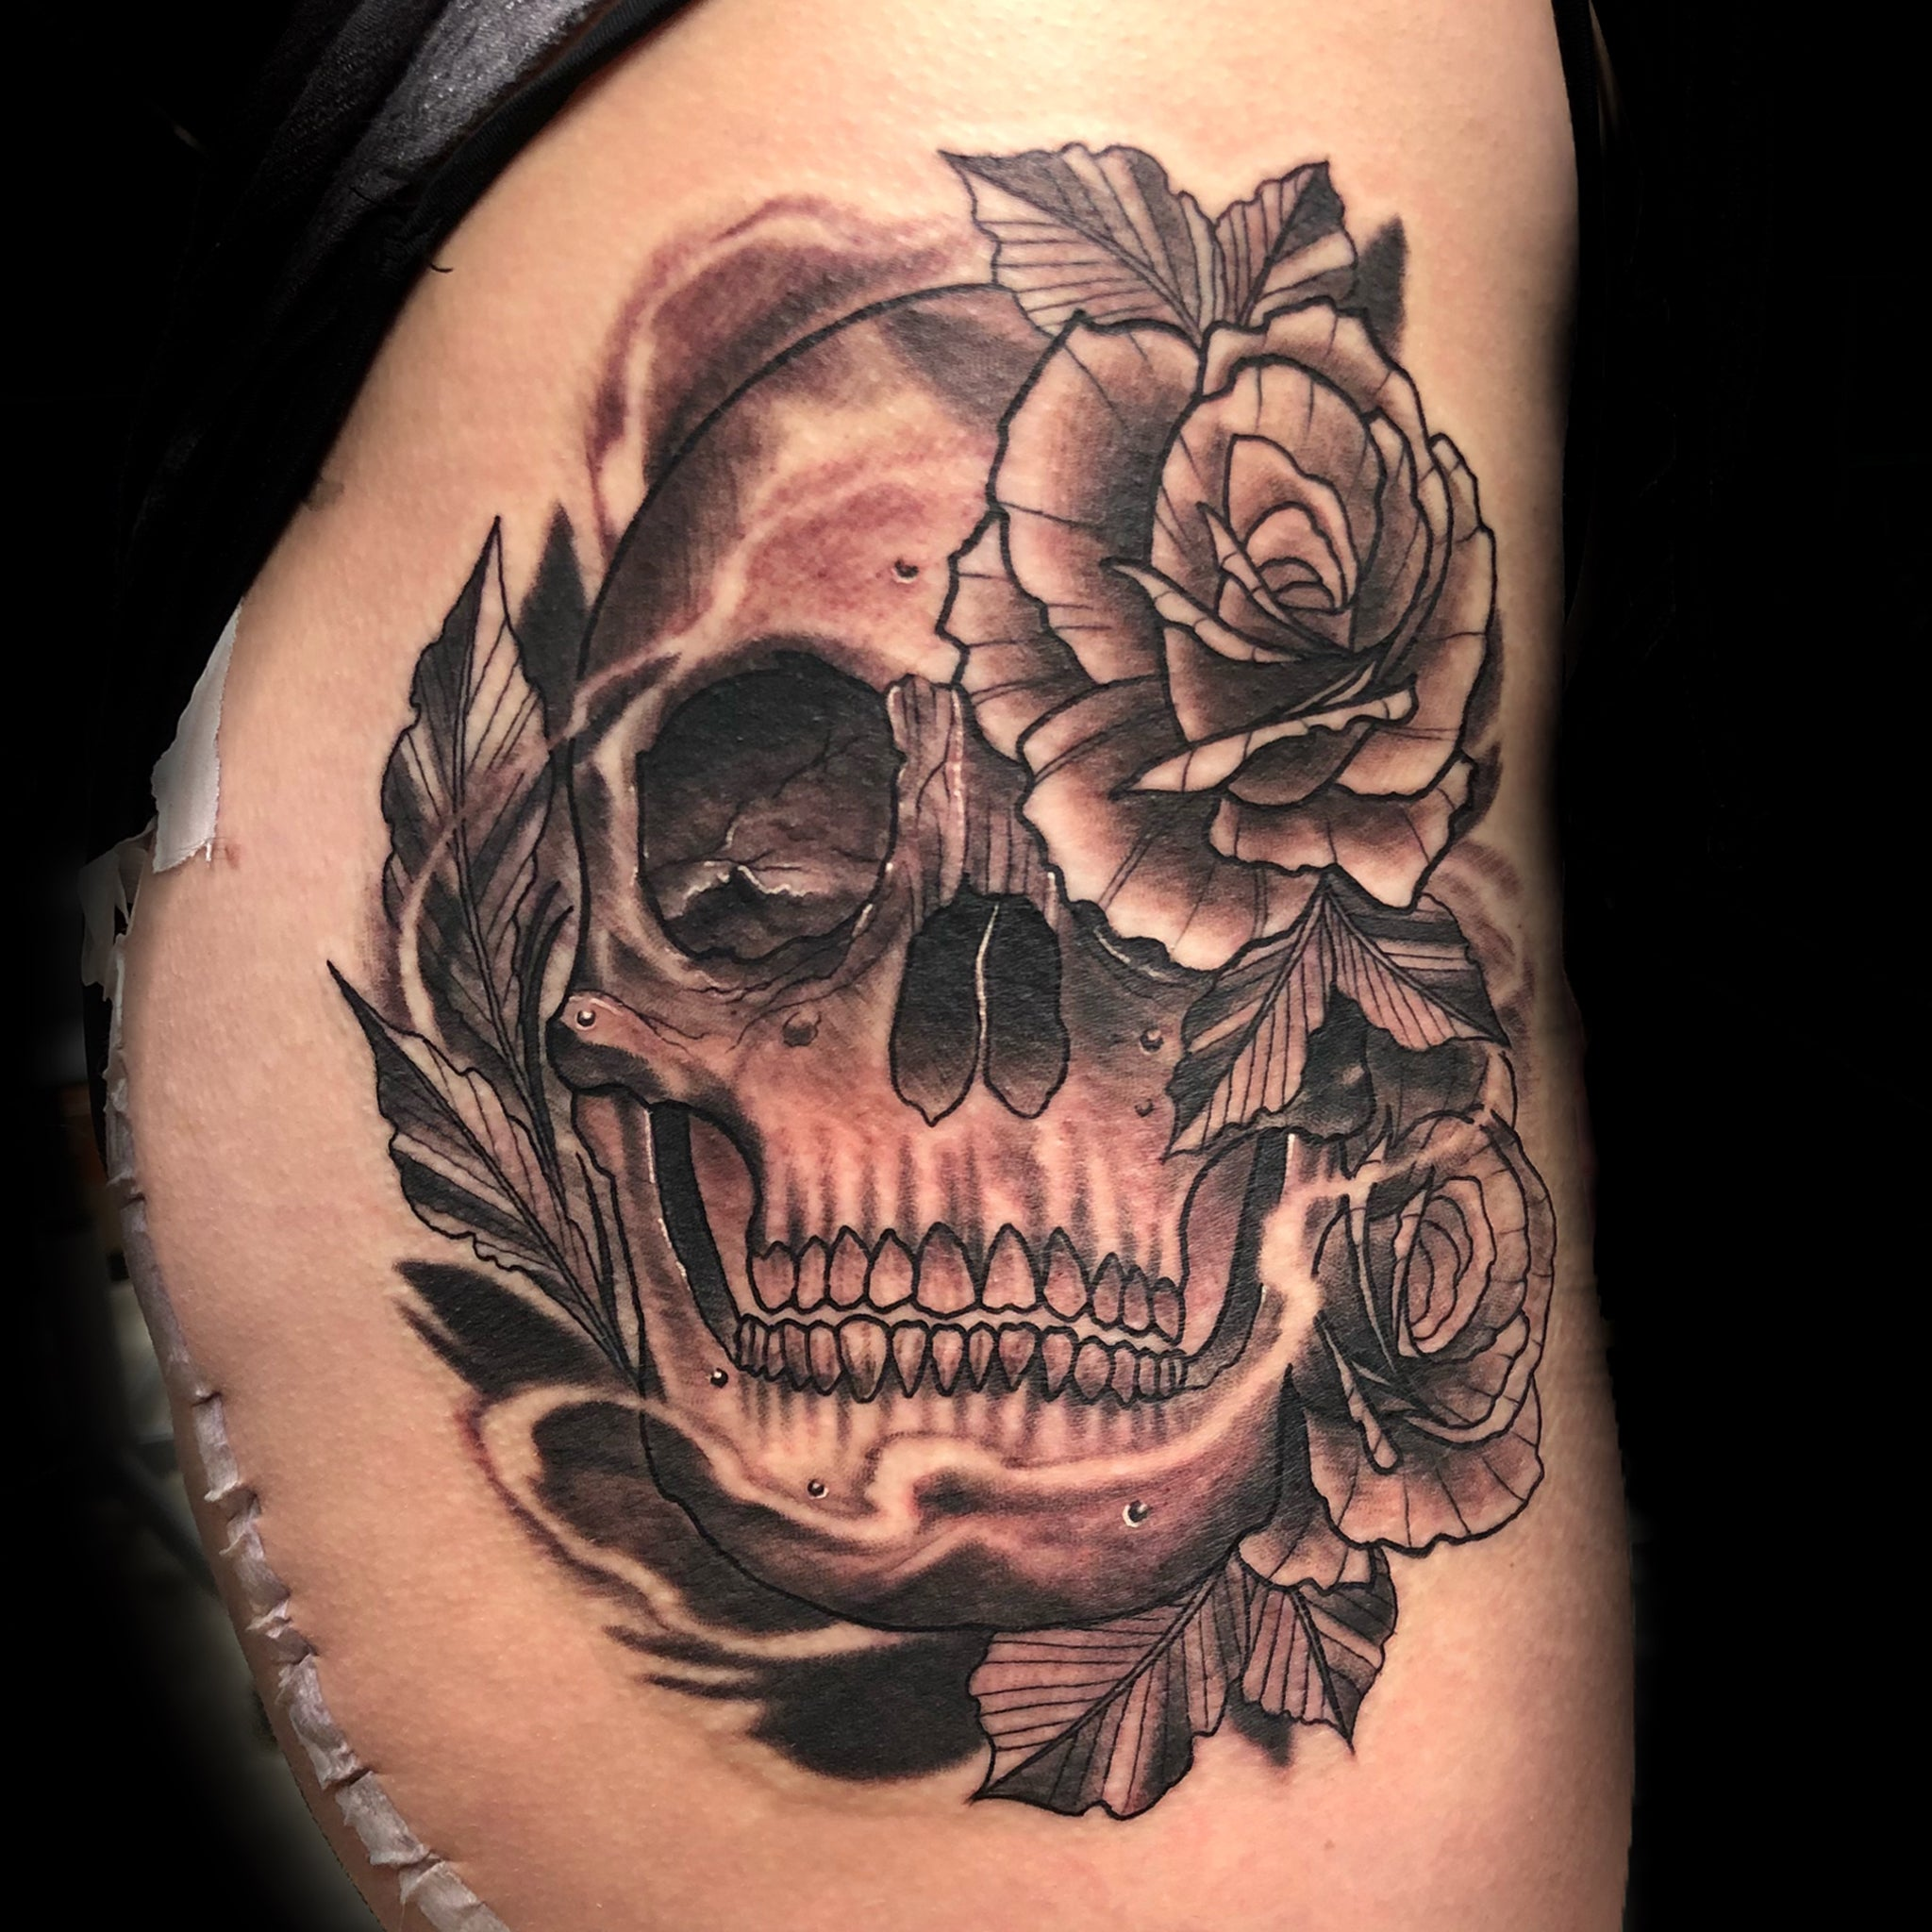 128e7d4d1 Tattoo Styles: Neo-Traditional, New School, Traditional, Black & Gray, Color